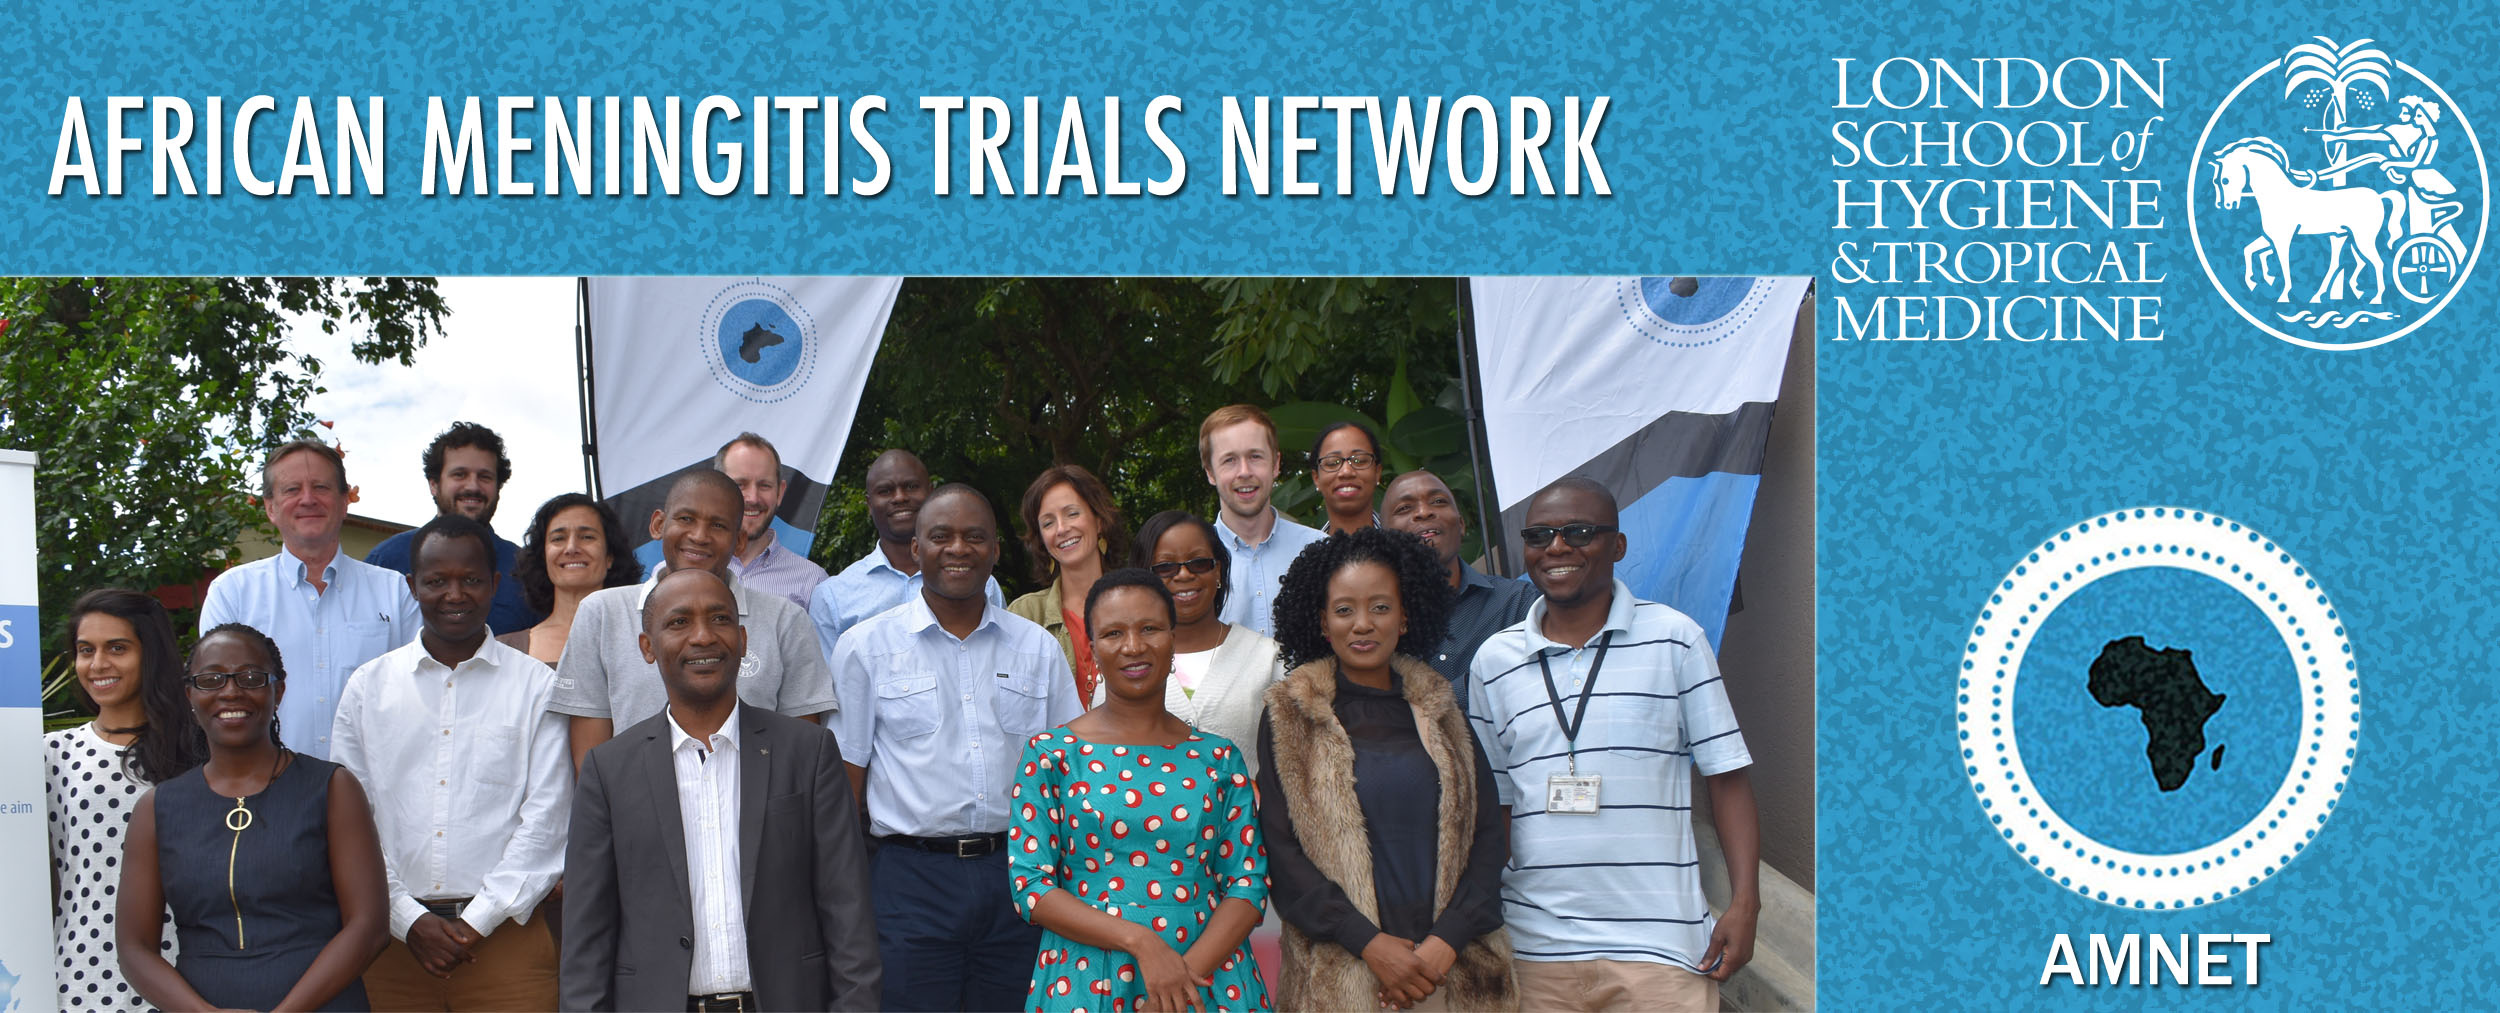 African Meningitis Trials Network (AMNET)